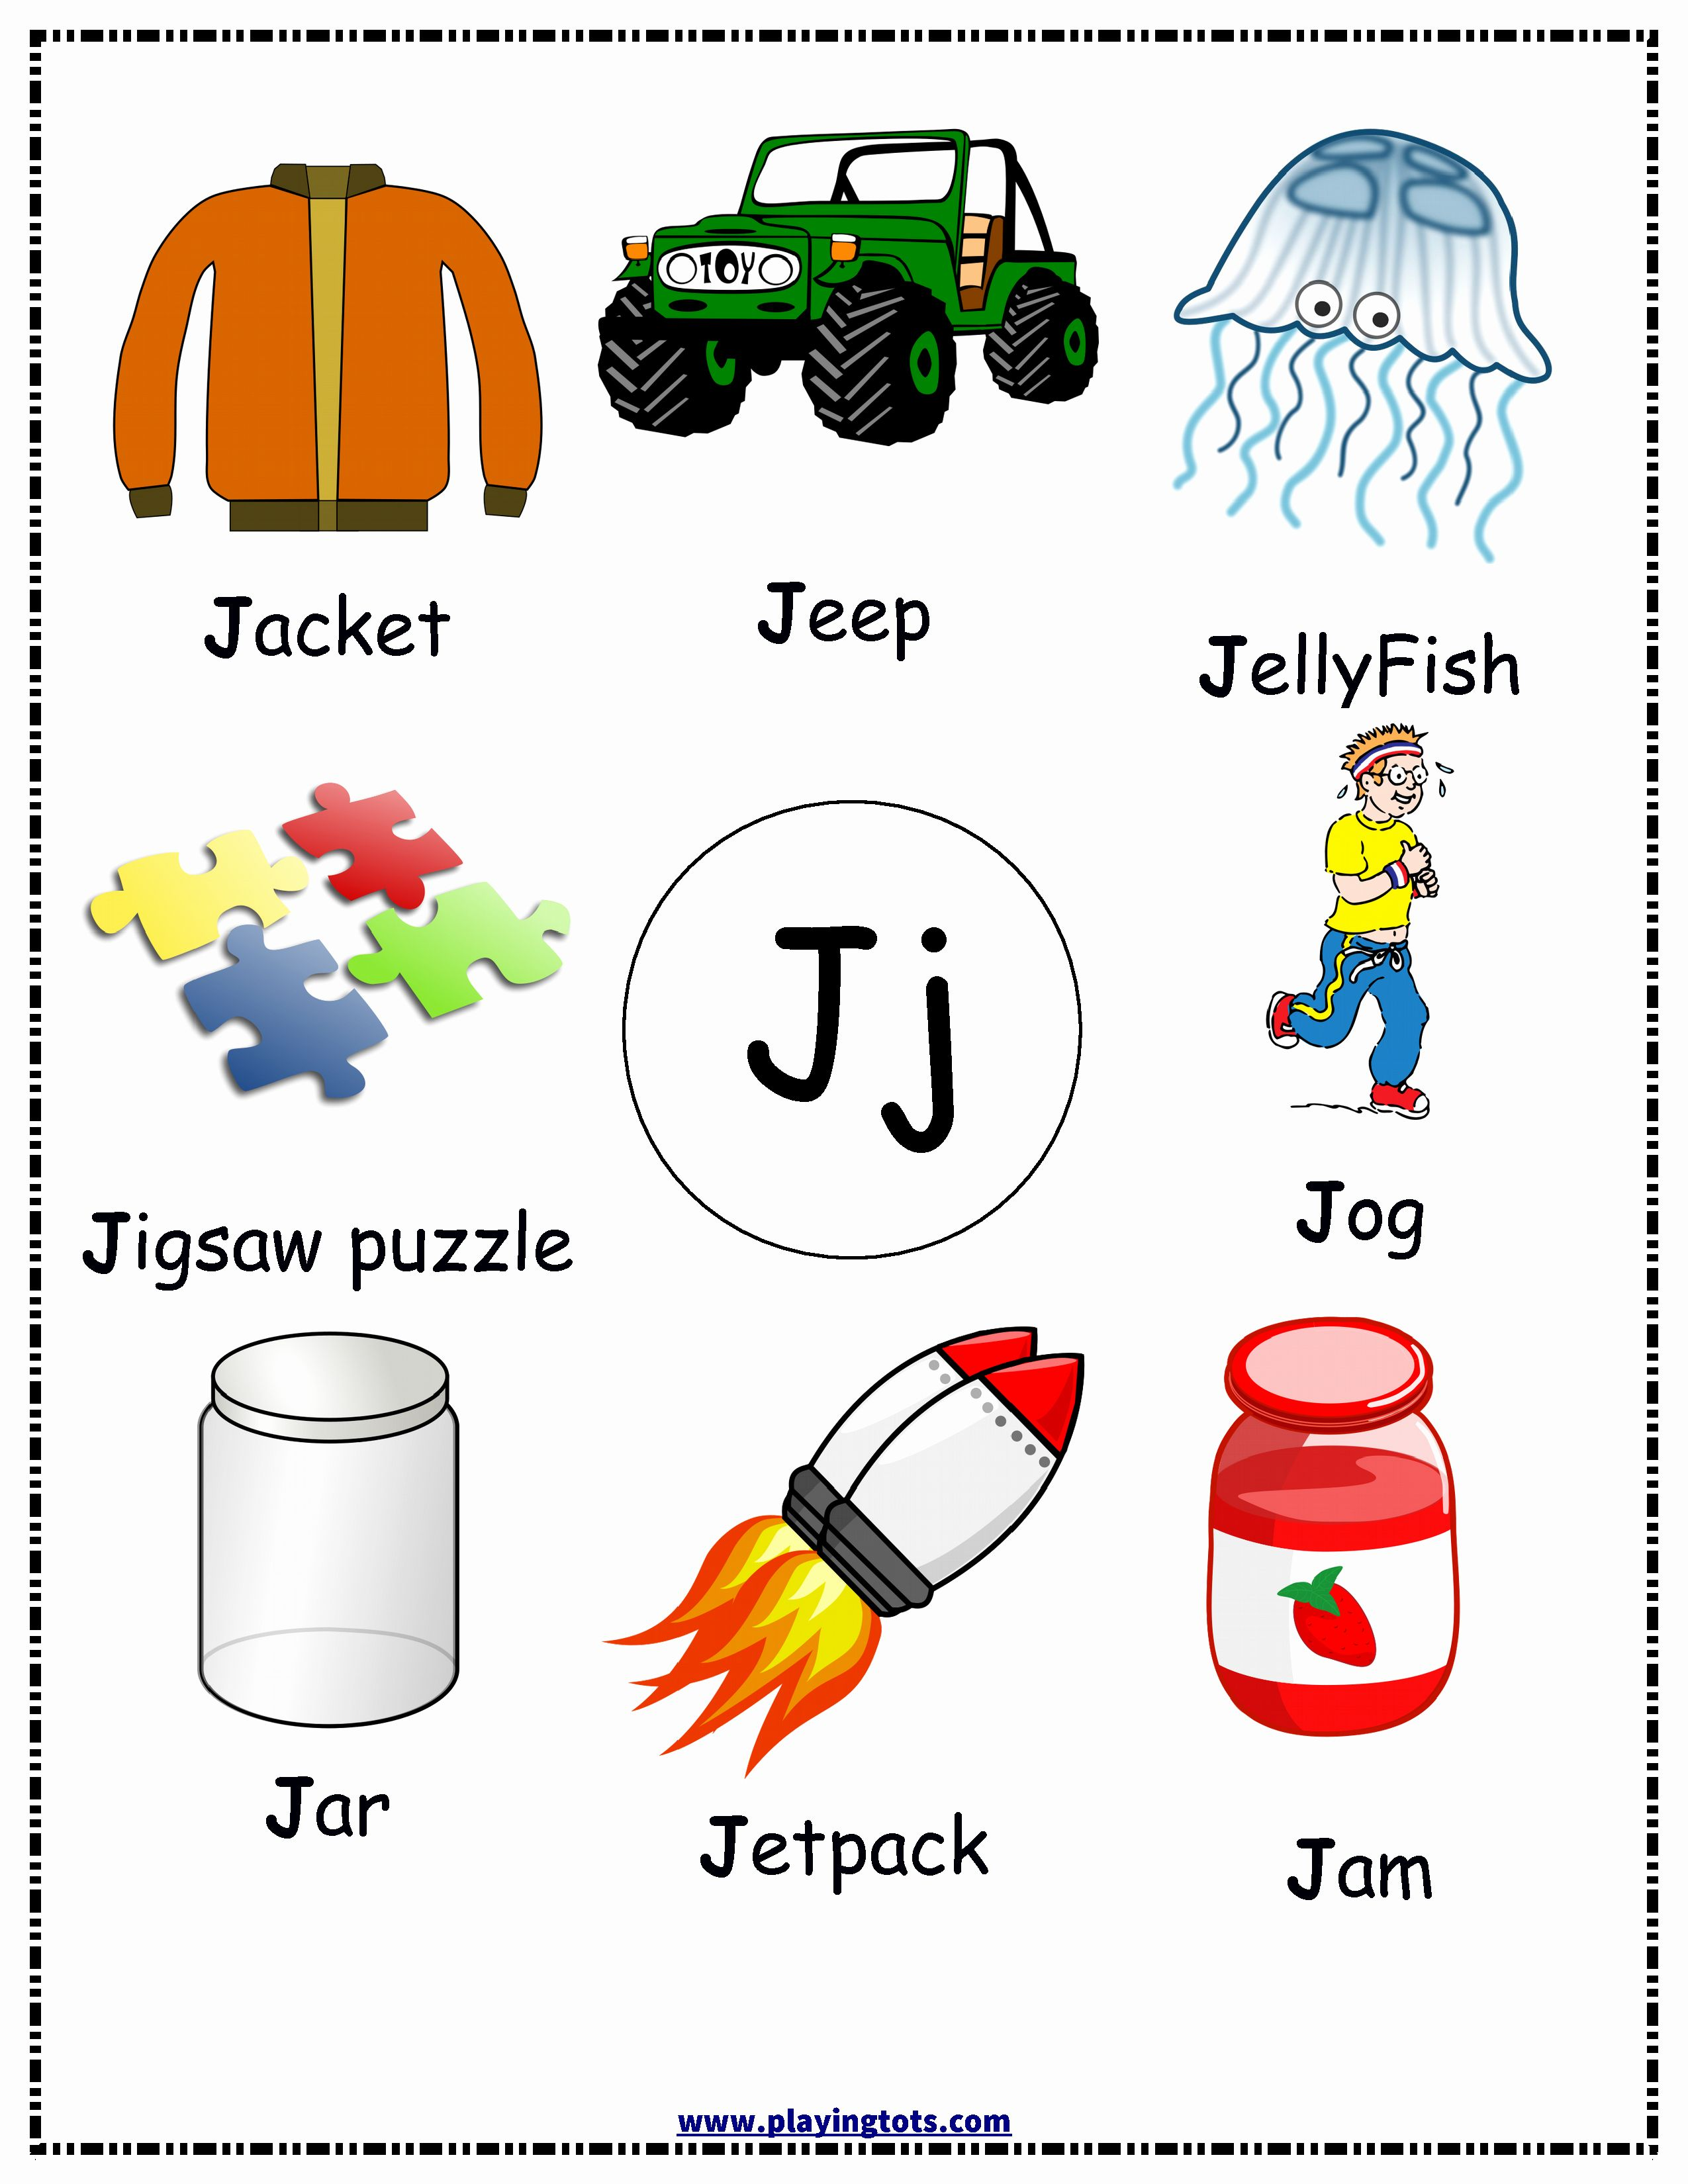 Alphabet Coloring Chart Printable Coloring Pages Gallery In 2020 Alphabet Activities Preschool Alphabet Worksheets Preschool Alphabet Worksheets Free